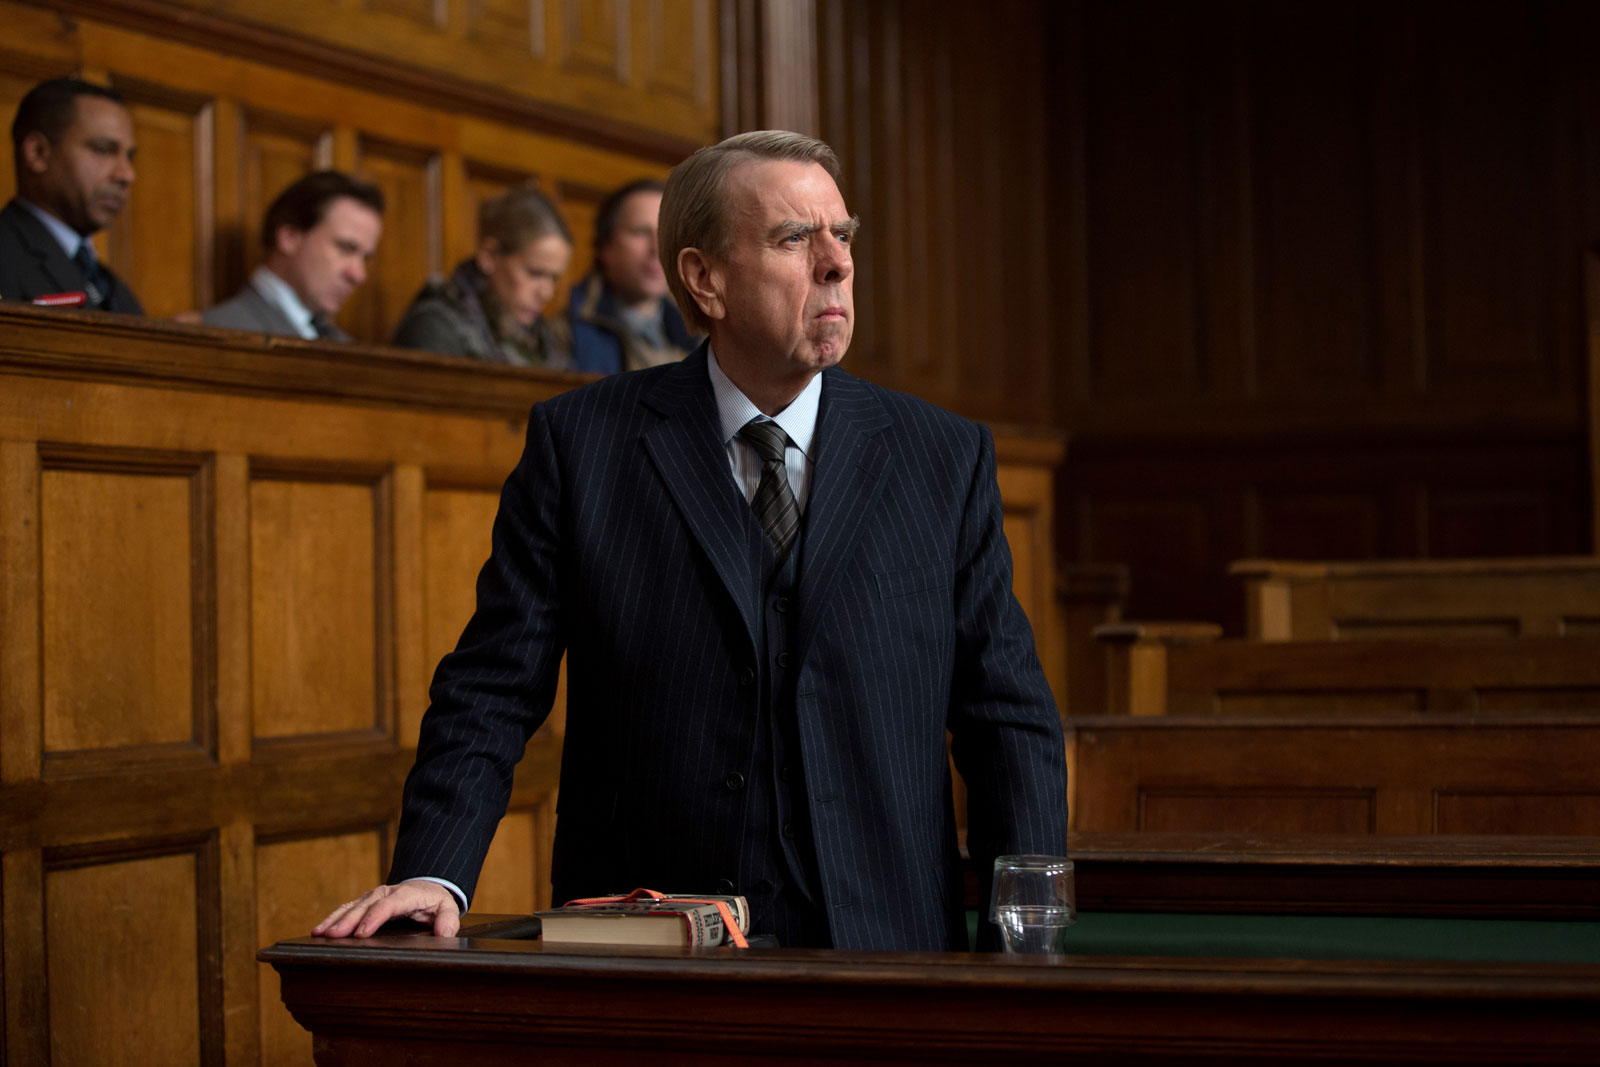 Timothy Spall as David Irving in Denial, 2016